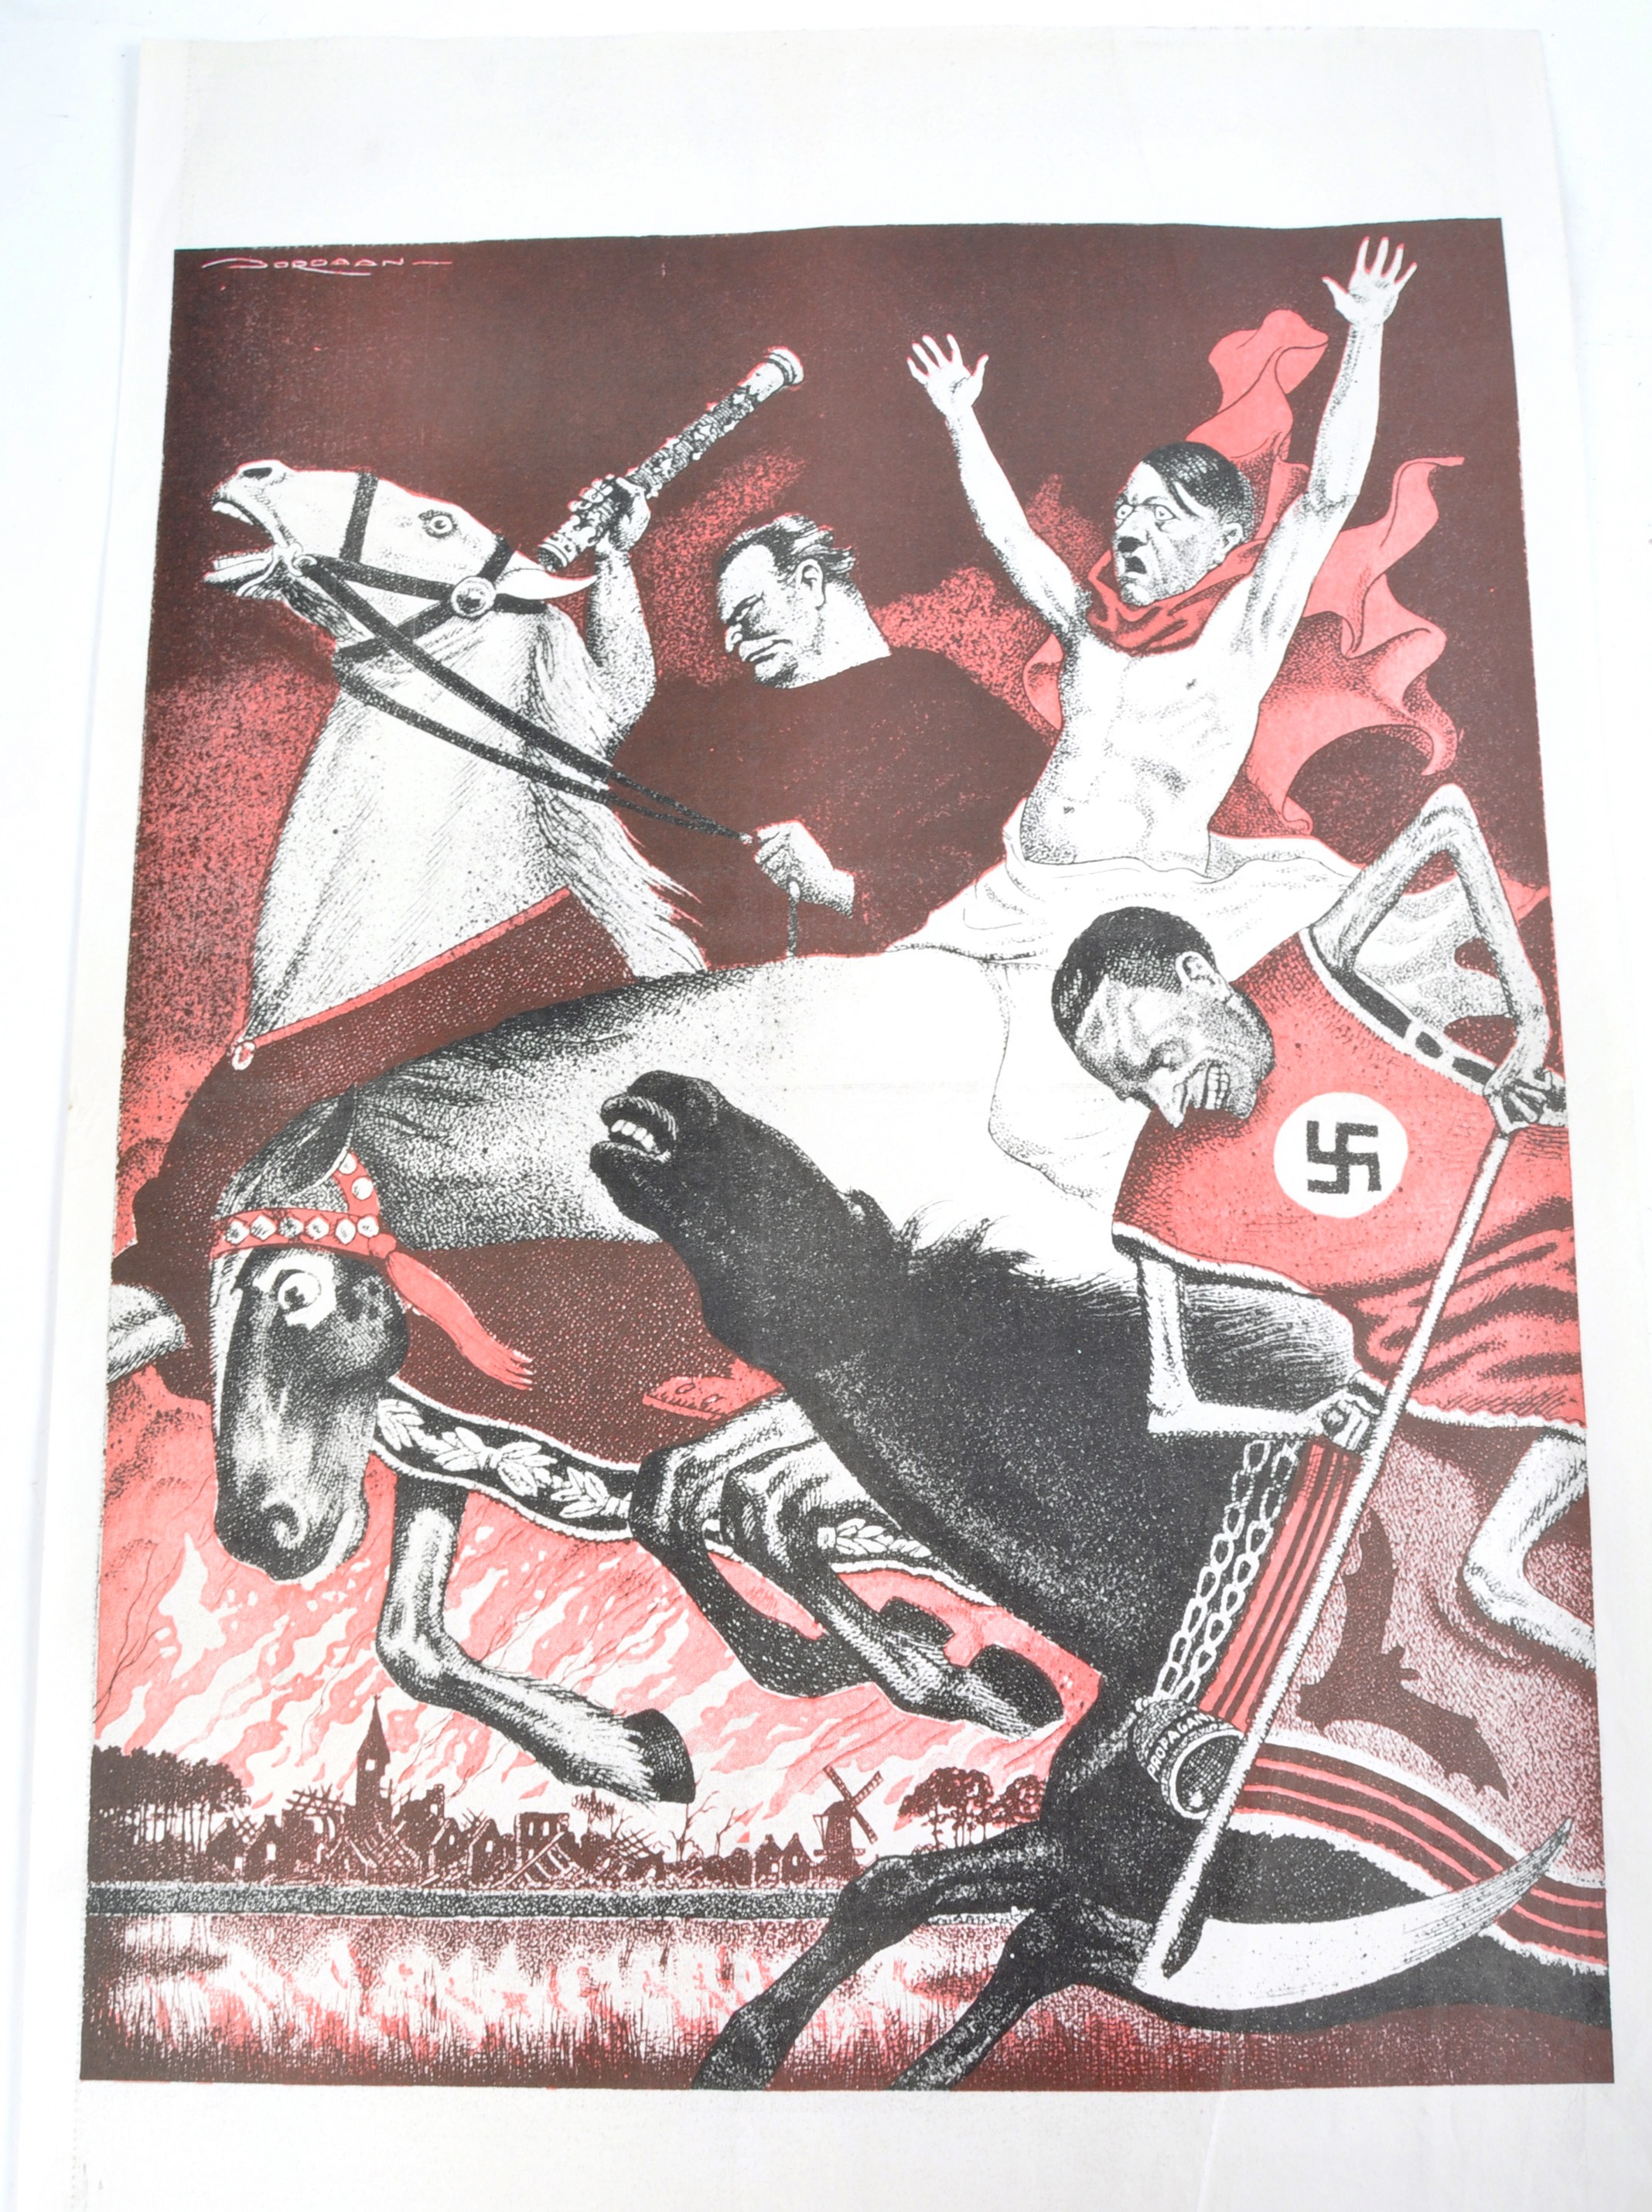 WWII SECOND WORLD WAR POSTERS - ENGLISH, GERMAN & OTHERS - Image 5 of 8